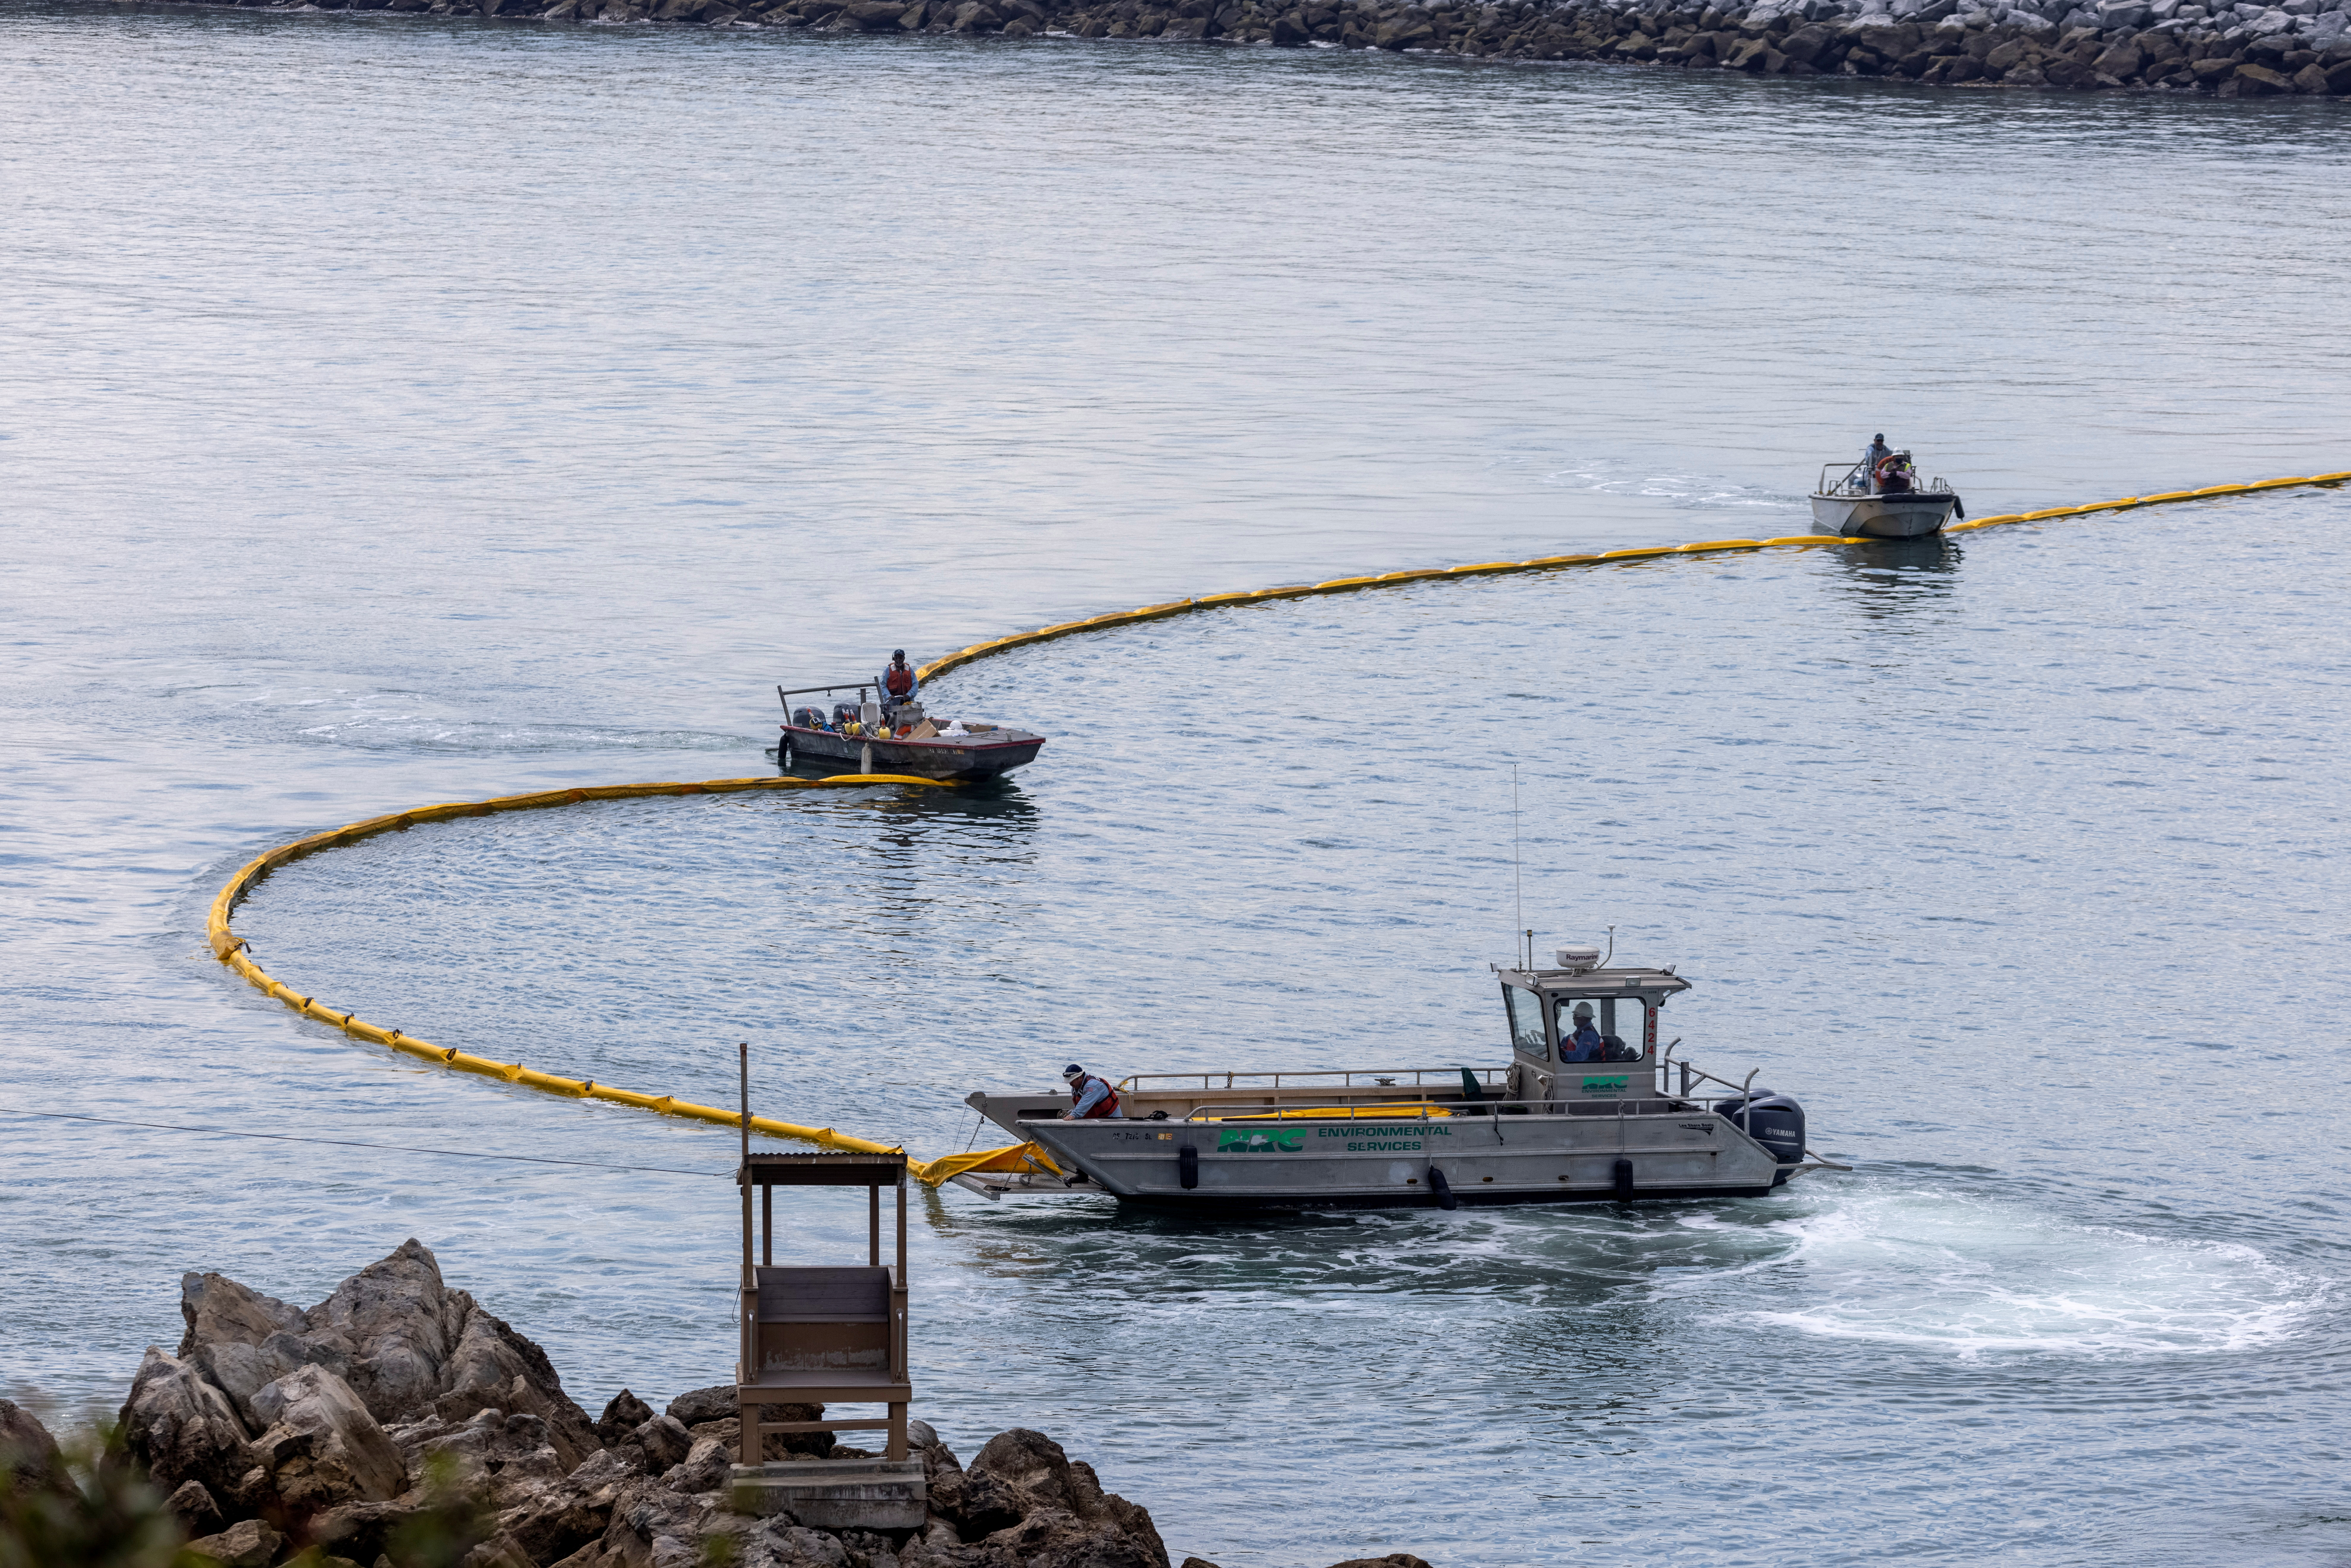 Workers seal off the entrance to Newport Beach harbor as a major oil spill off the coast of California travels south in ocean currents, towards Newport Beach, California, U.S., October 4, 2021. REUTERS/Mike Blake/File Photo